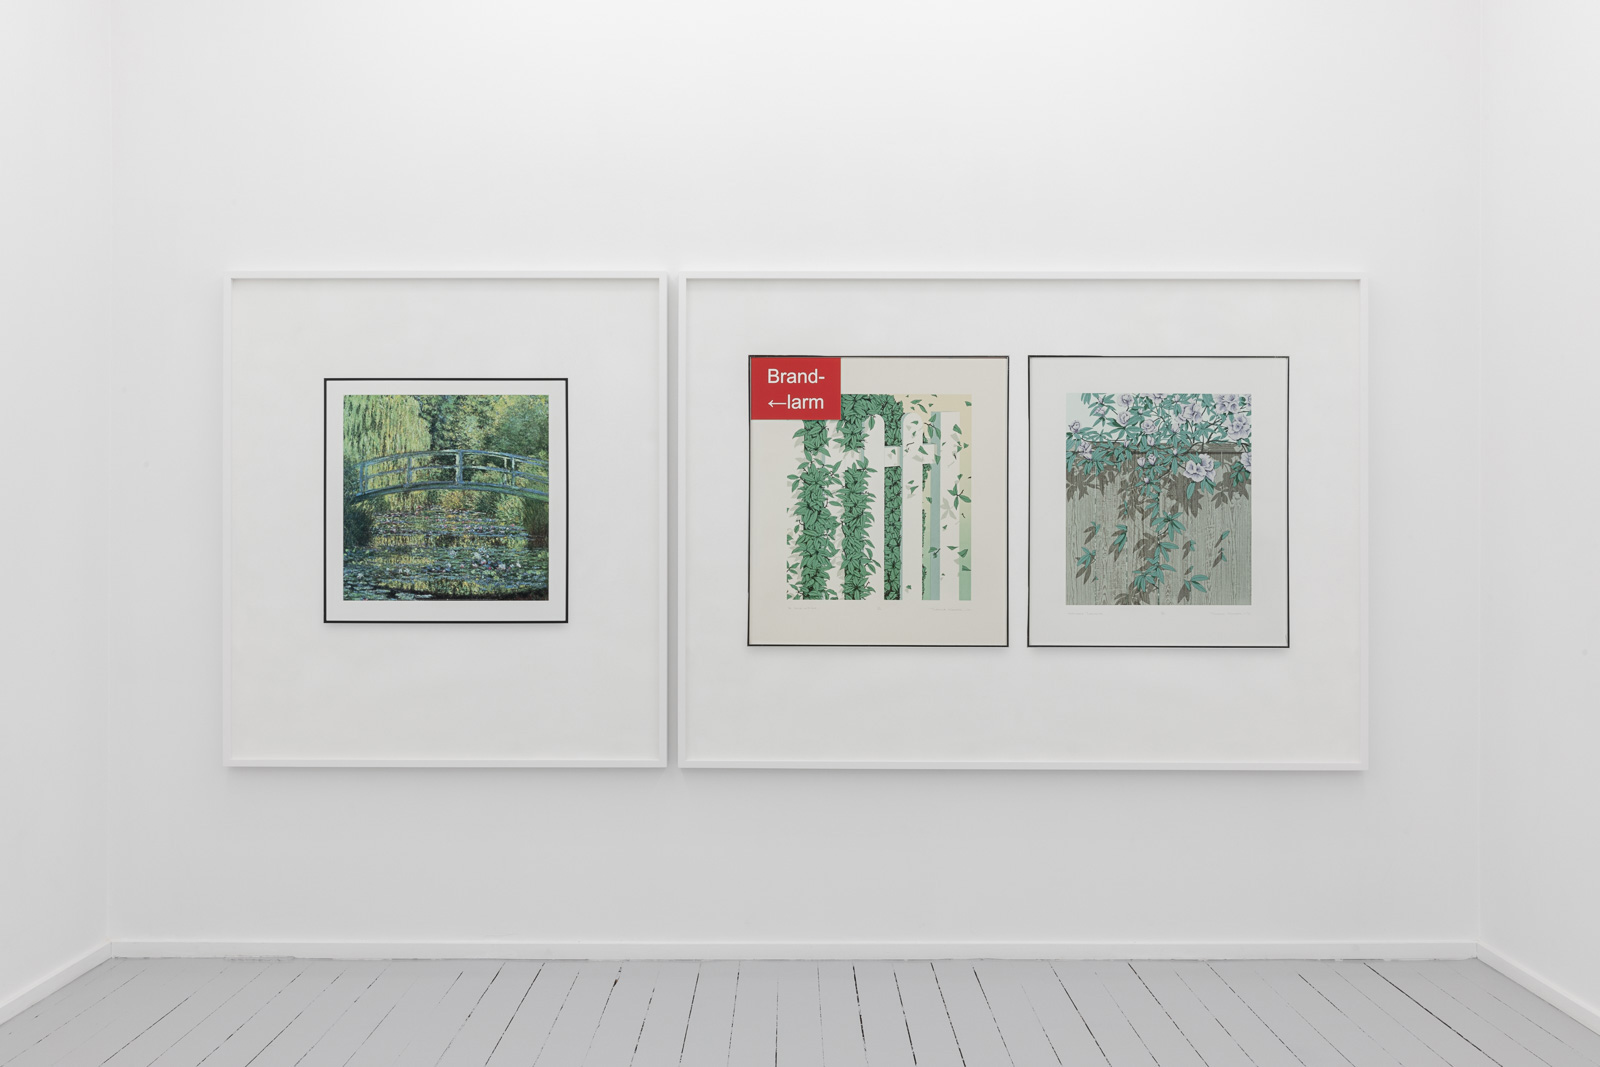 Waiting Room of a Neurologist (Claude Monet, The Water Lily Pond: Green Harmony, 1899), 2019Pigment print on acid free cotton paper in artist's frame, 144 x 129 x 4 cm. Ed. 5 + 1 APWaiting Room of a Neurologist, (Terence Warren, Welcome Intrusion and A Snip In Time, 1979), 2019Pigment print on acid free cotton paper in artist's frame, 144 x 199 x 4 cm. Ed. 5 + 1 AP